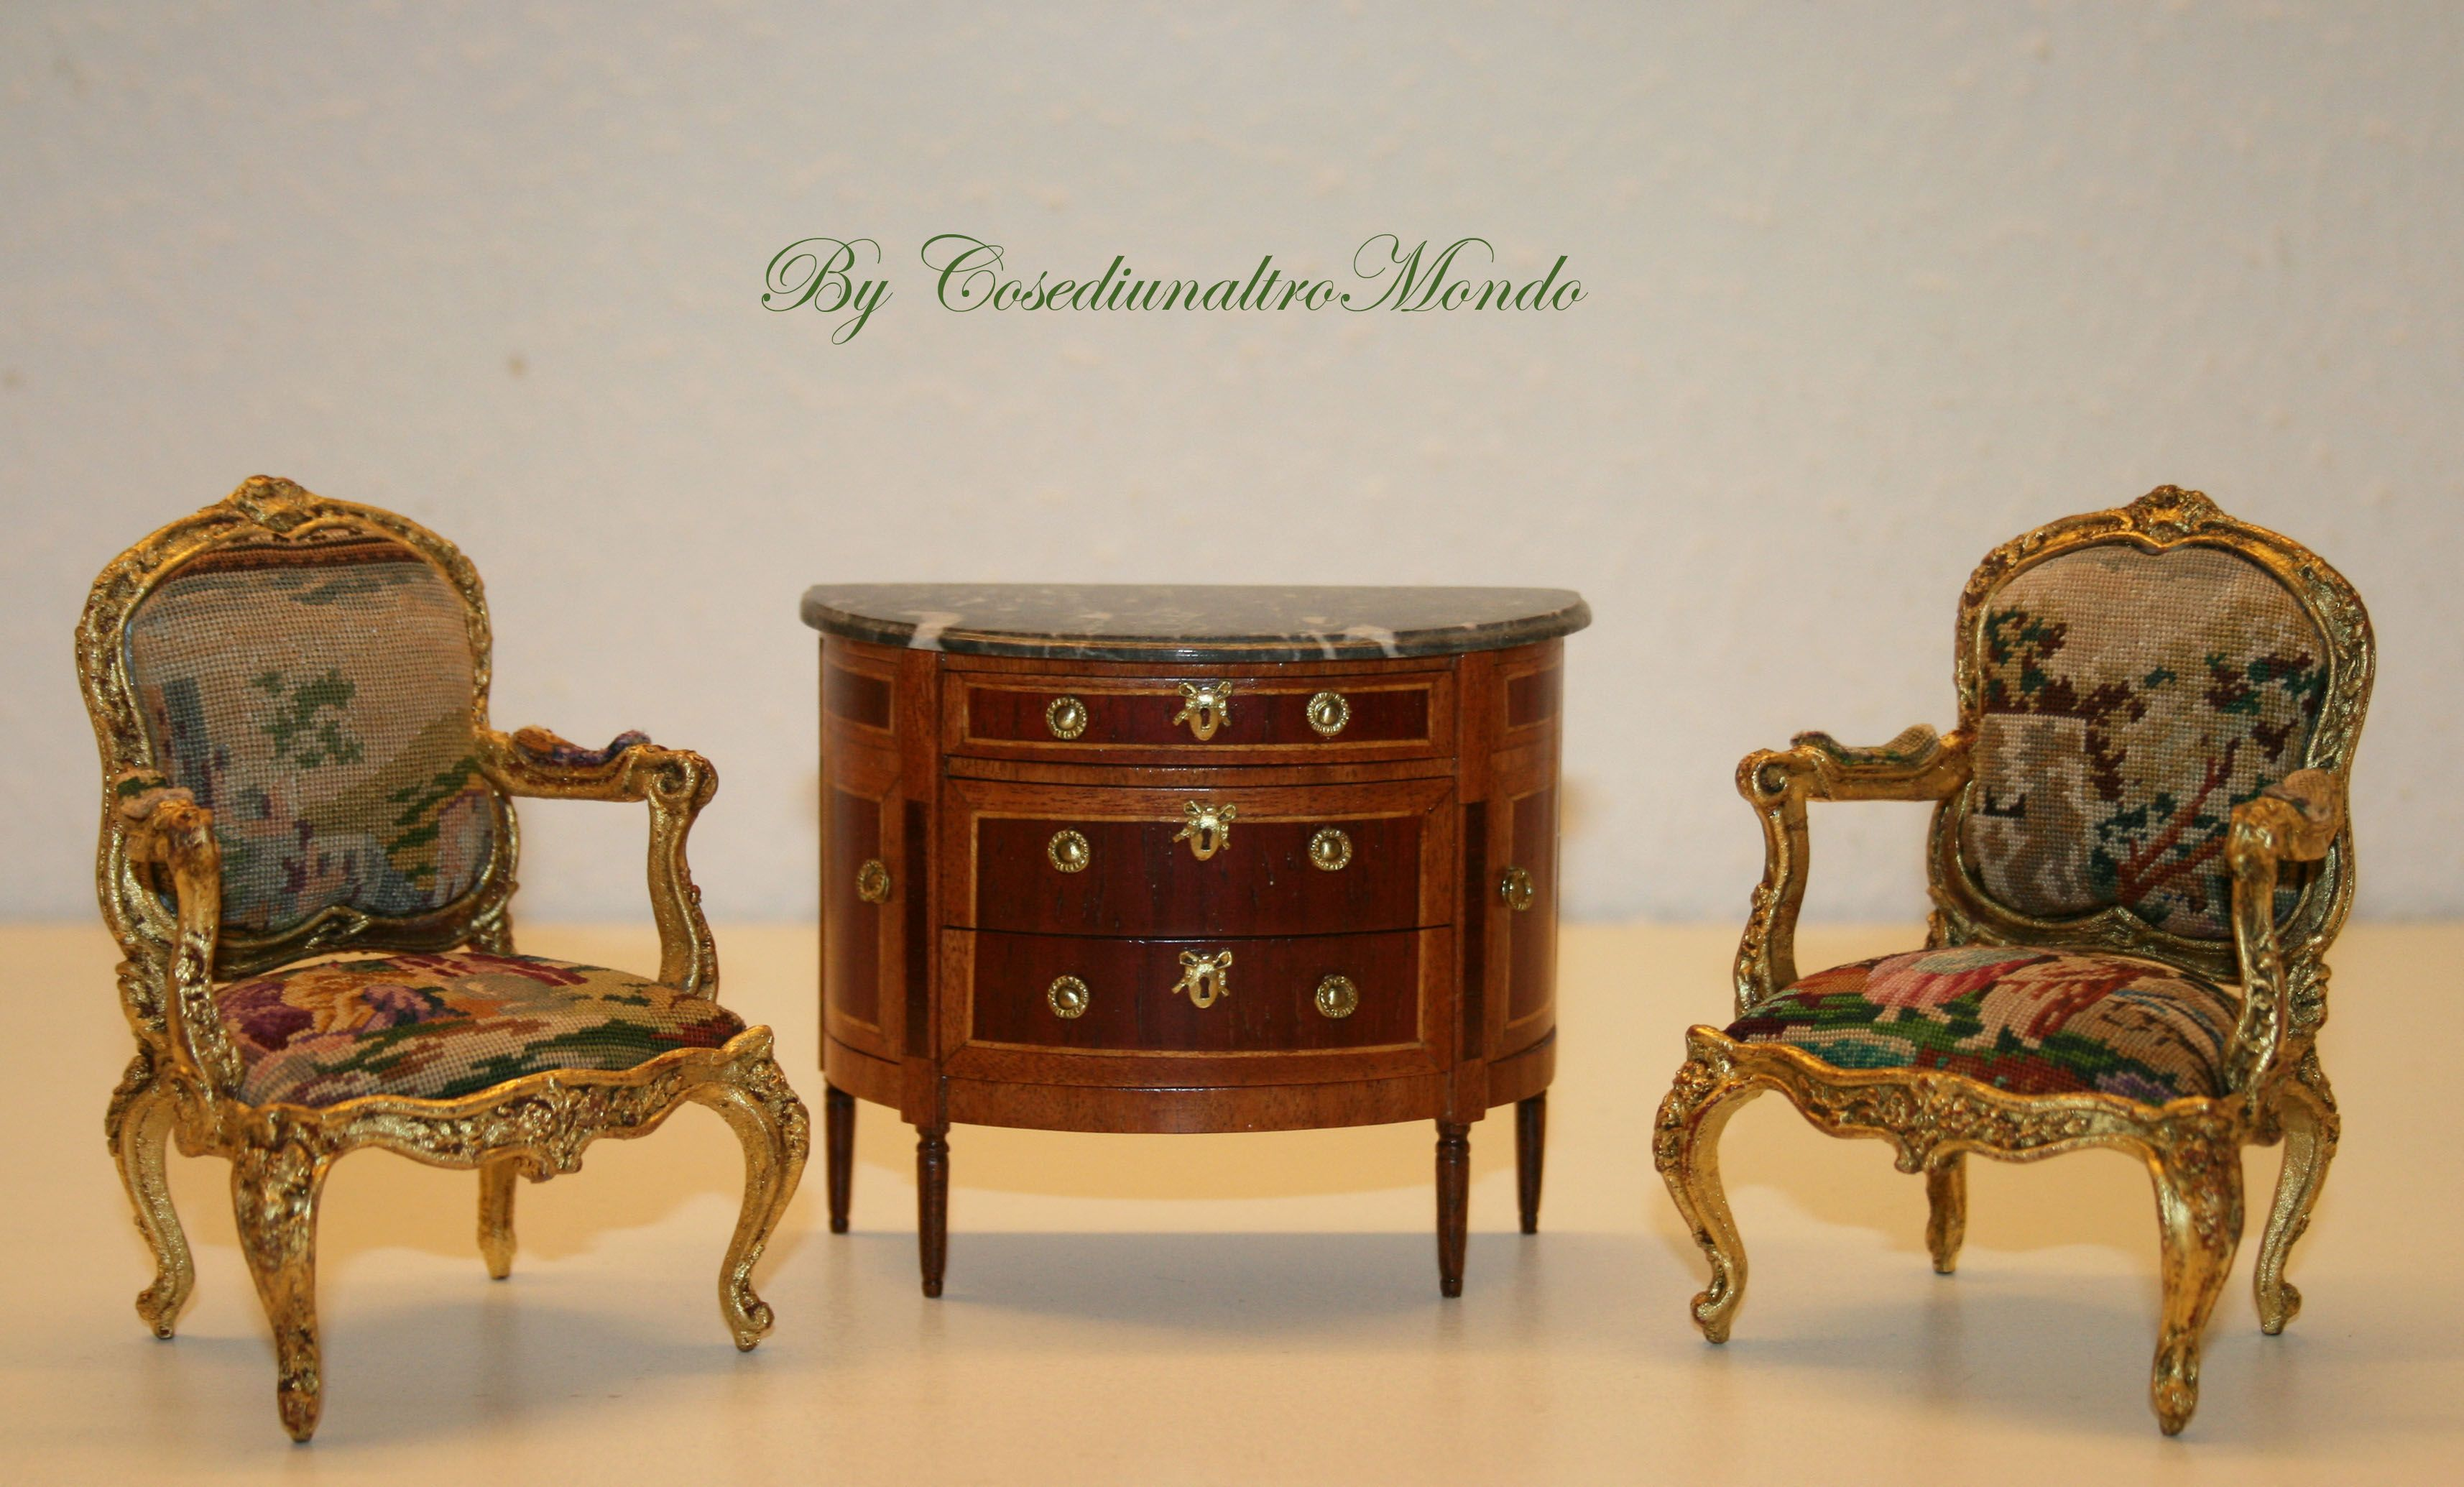 handmade miniature furniture, 1/12 scale for dolls' house